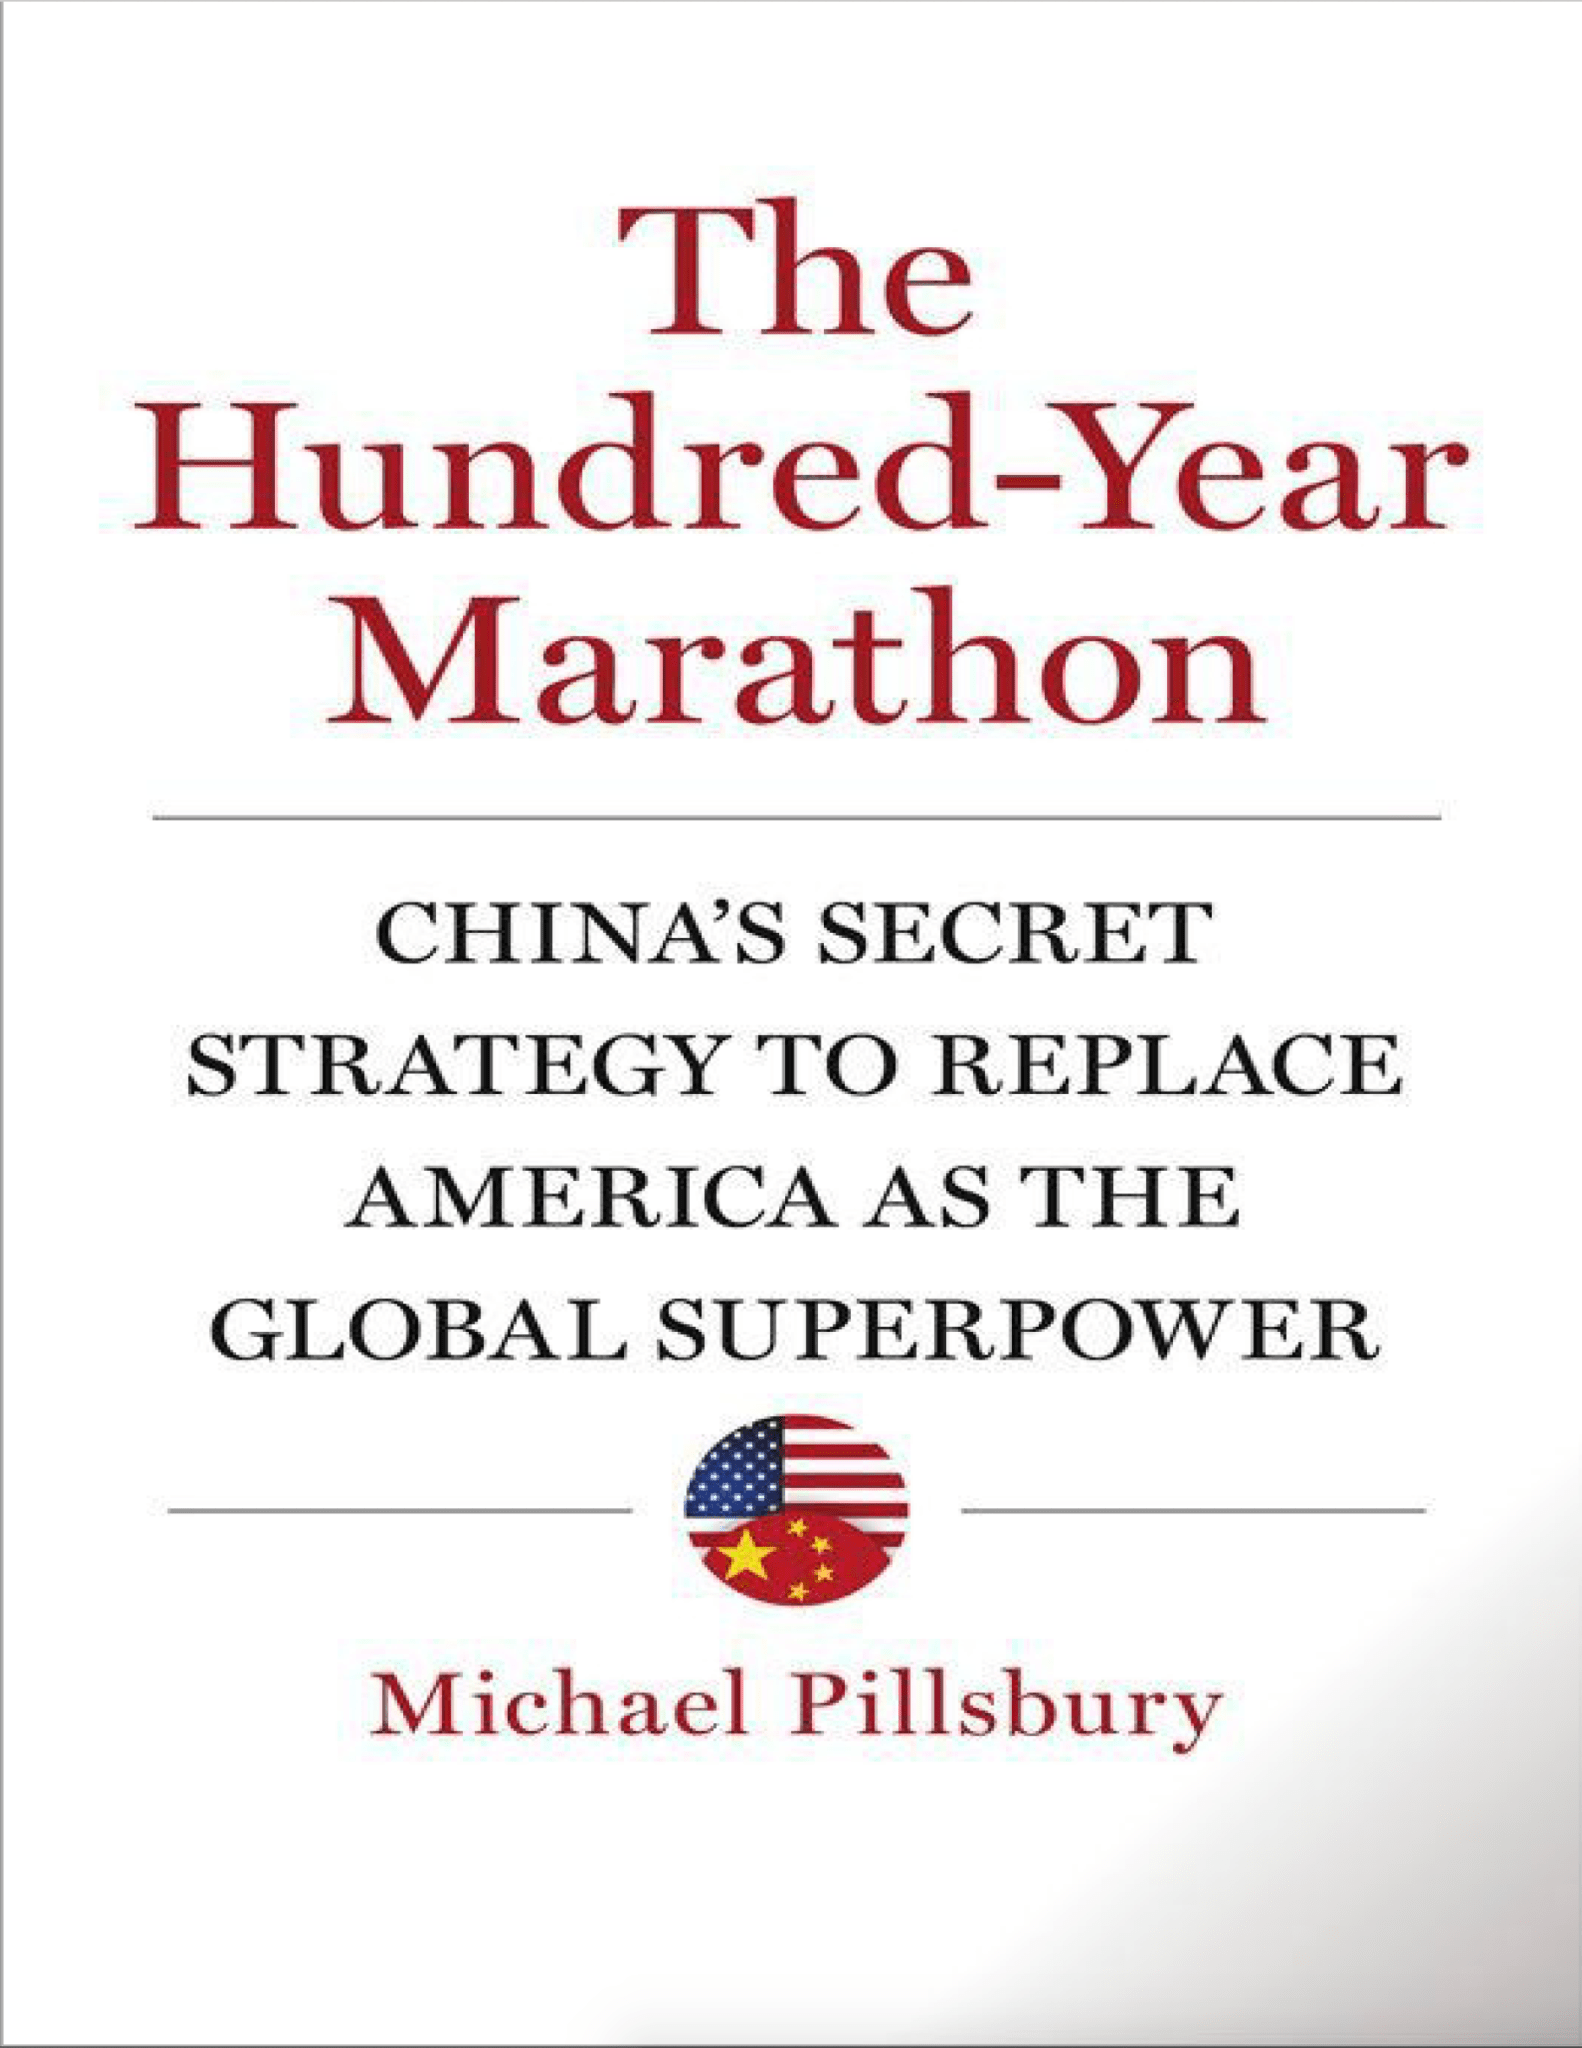 Screenshot 2020 02 09 at 15.11.33 - The Hundred-Year Marathon: China's Secret Strategy to Replace America as the Global Superpower